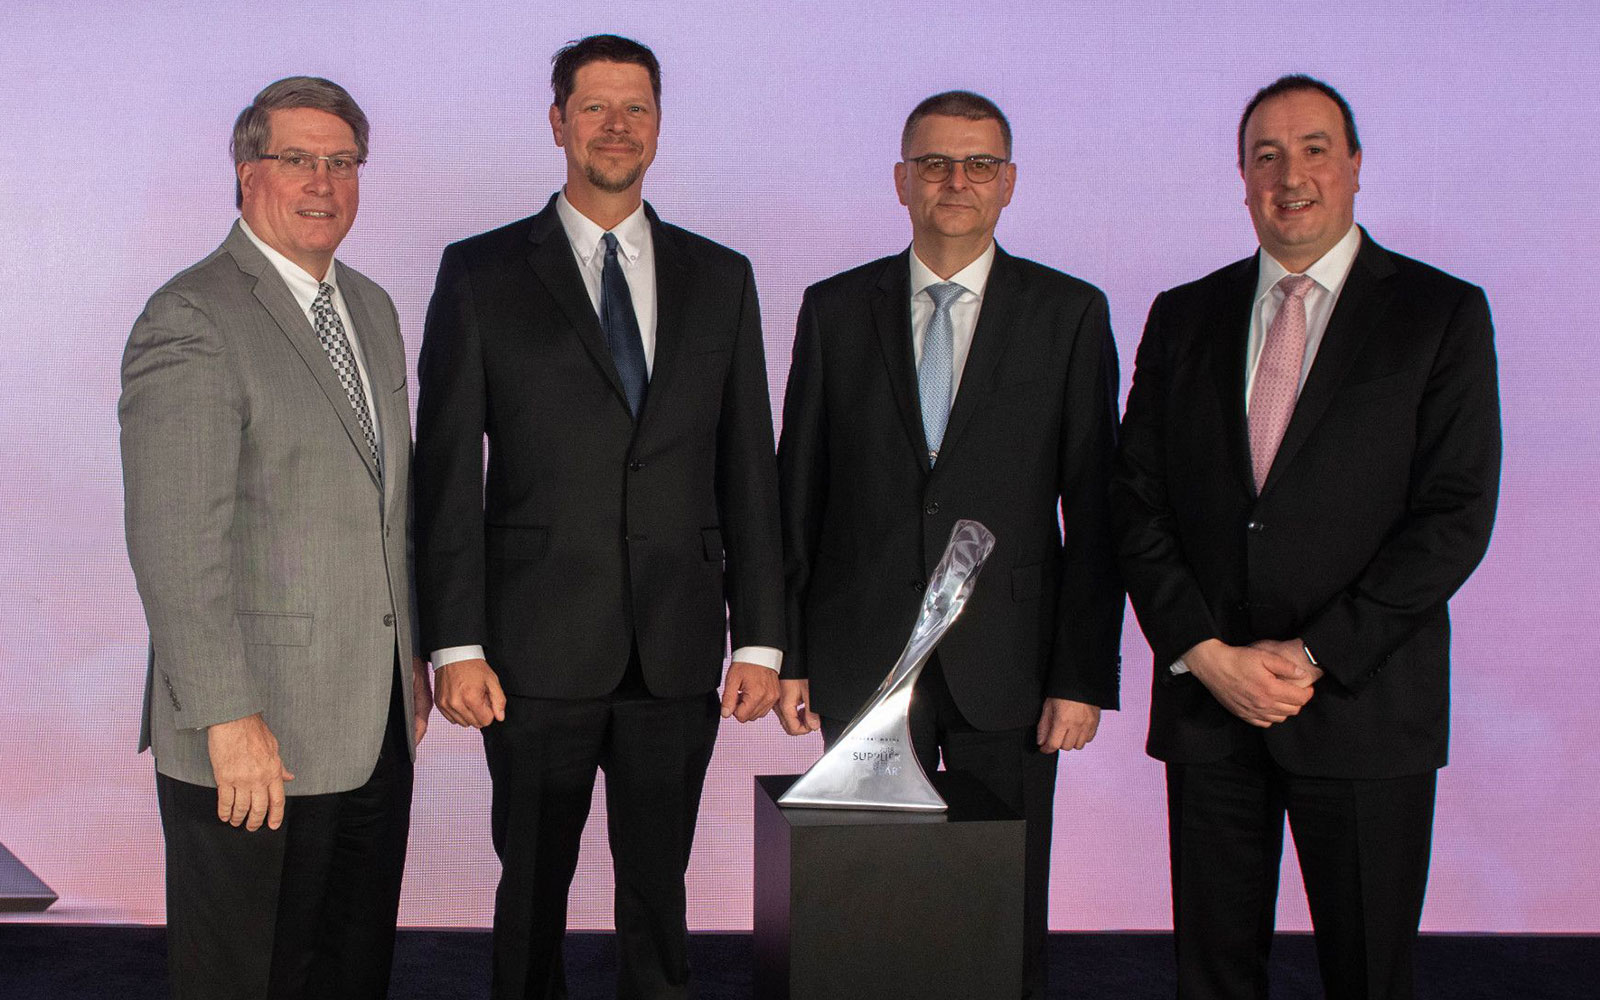 HELLER mit Hattrick beim Supplier of the Year-Award von GM